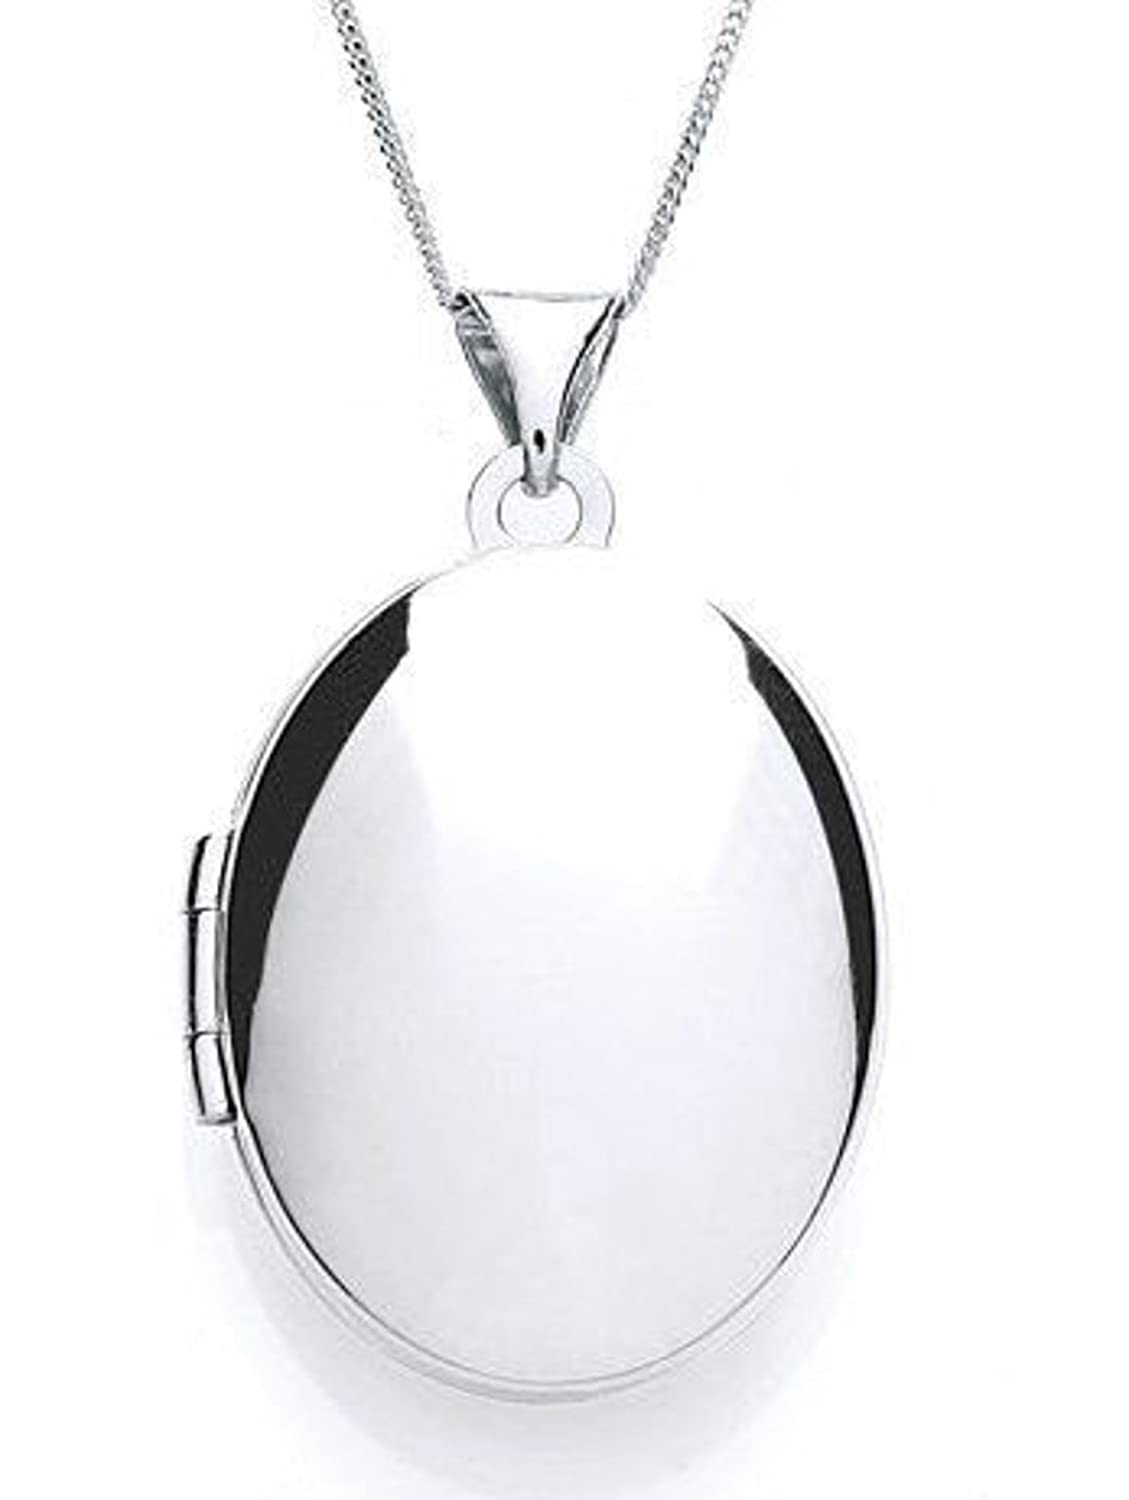 Plain sterling silver oval locket pendant with 18 chain jewellery plain sterling silver oval locket pendant with 18 chain jewellery gift box amazon jewellery aloadofball Images